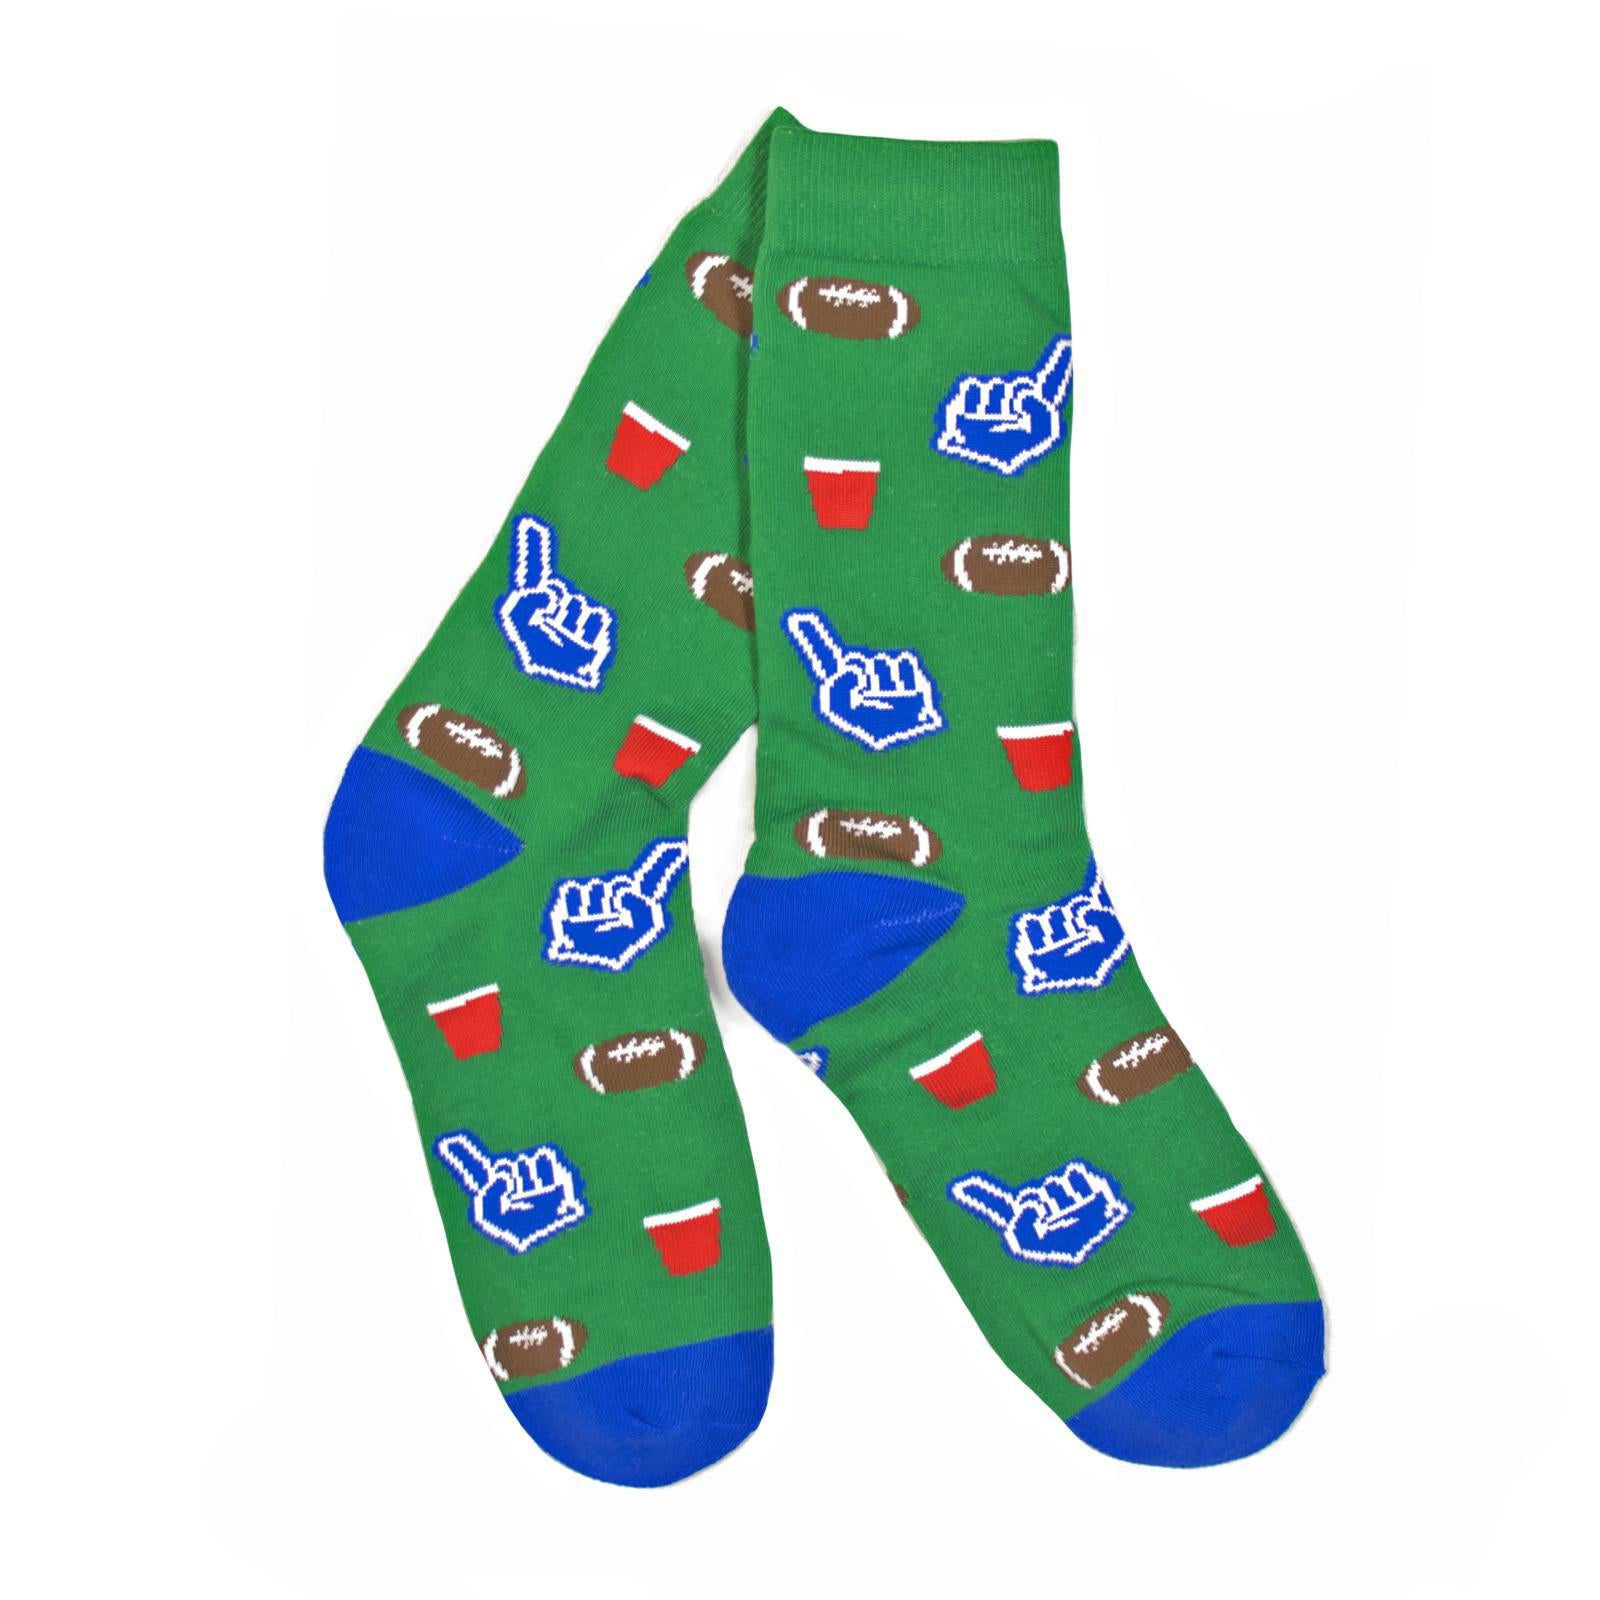 Tailgating Socks-Socks-KY for KY Store